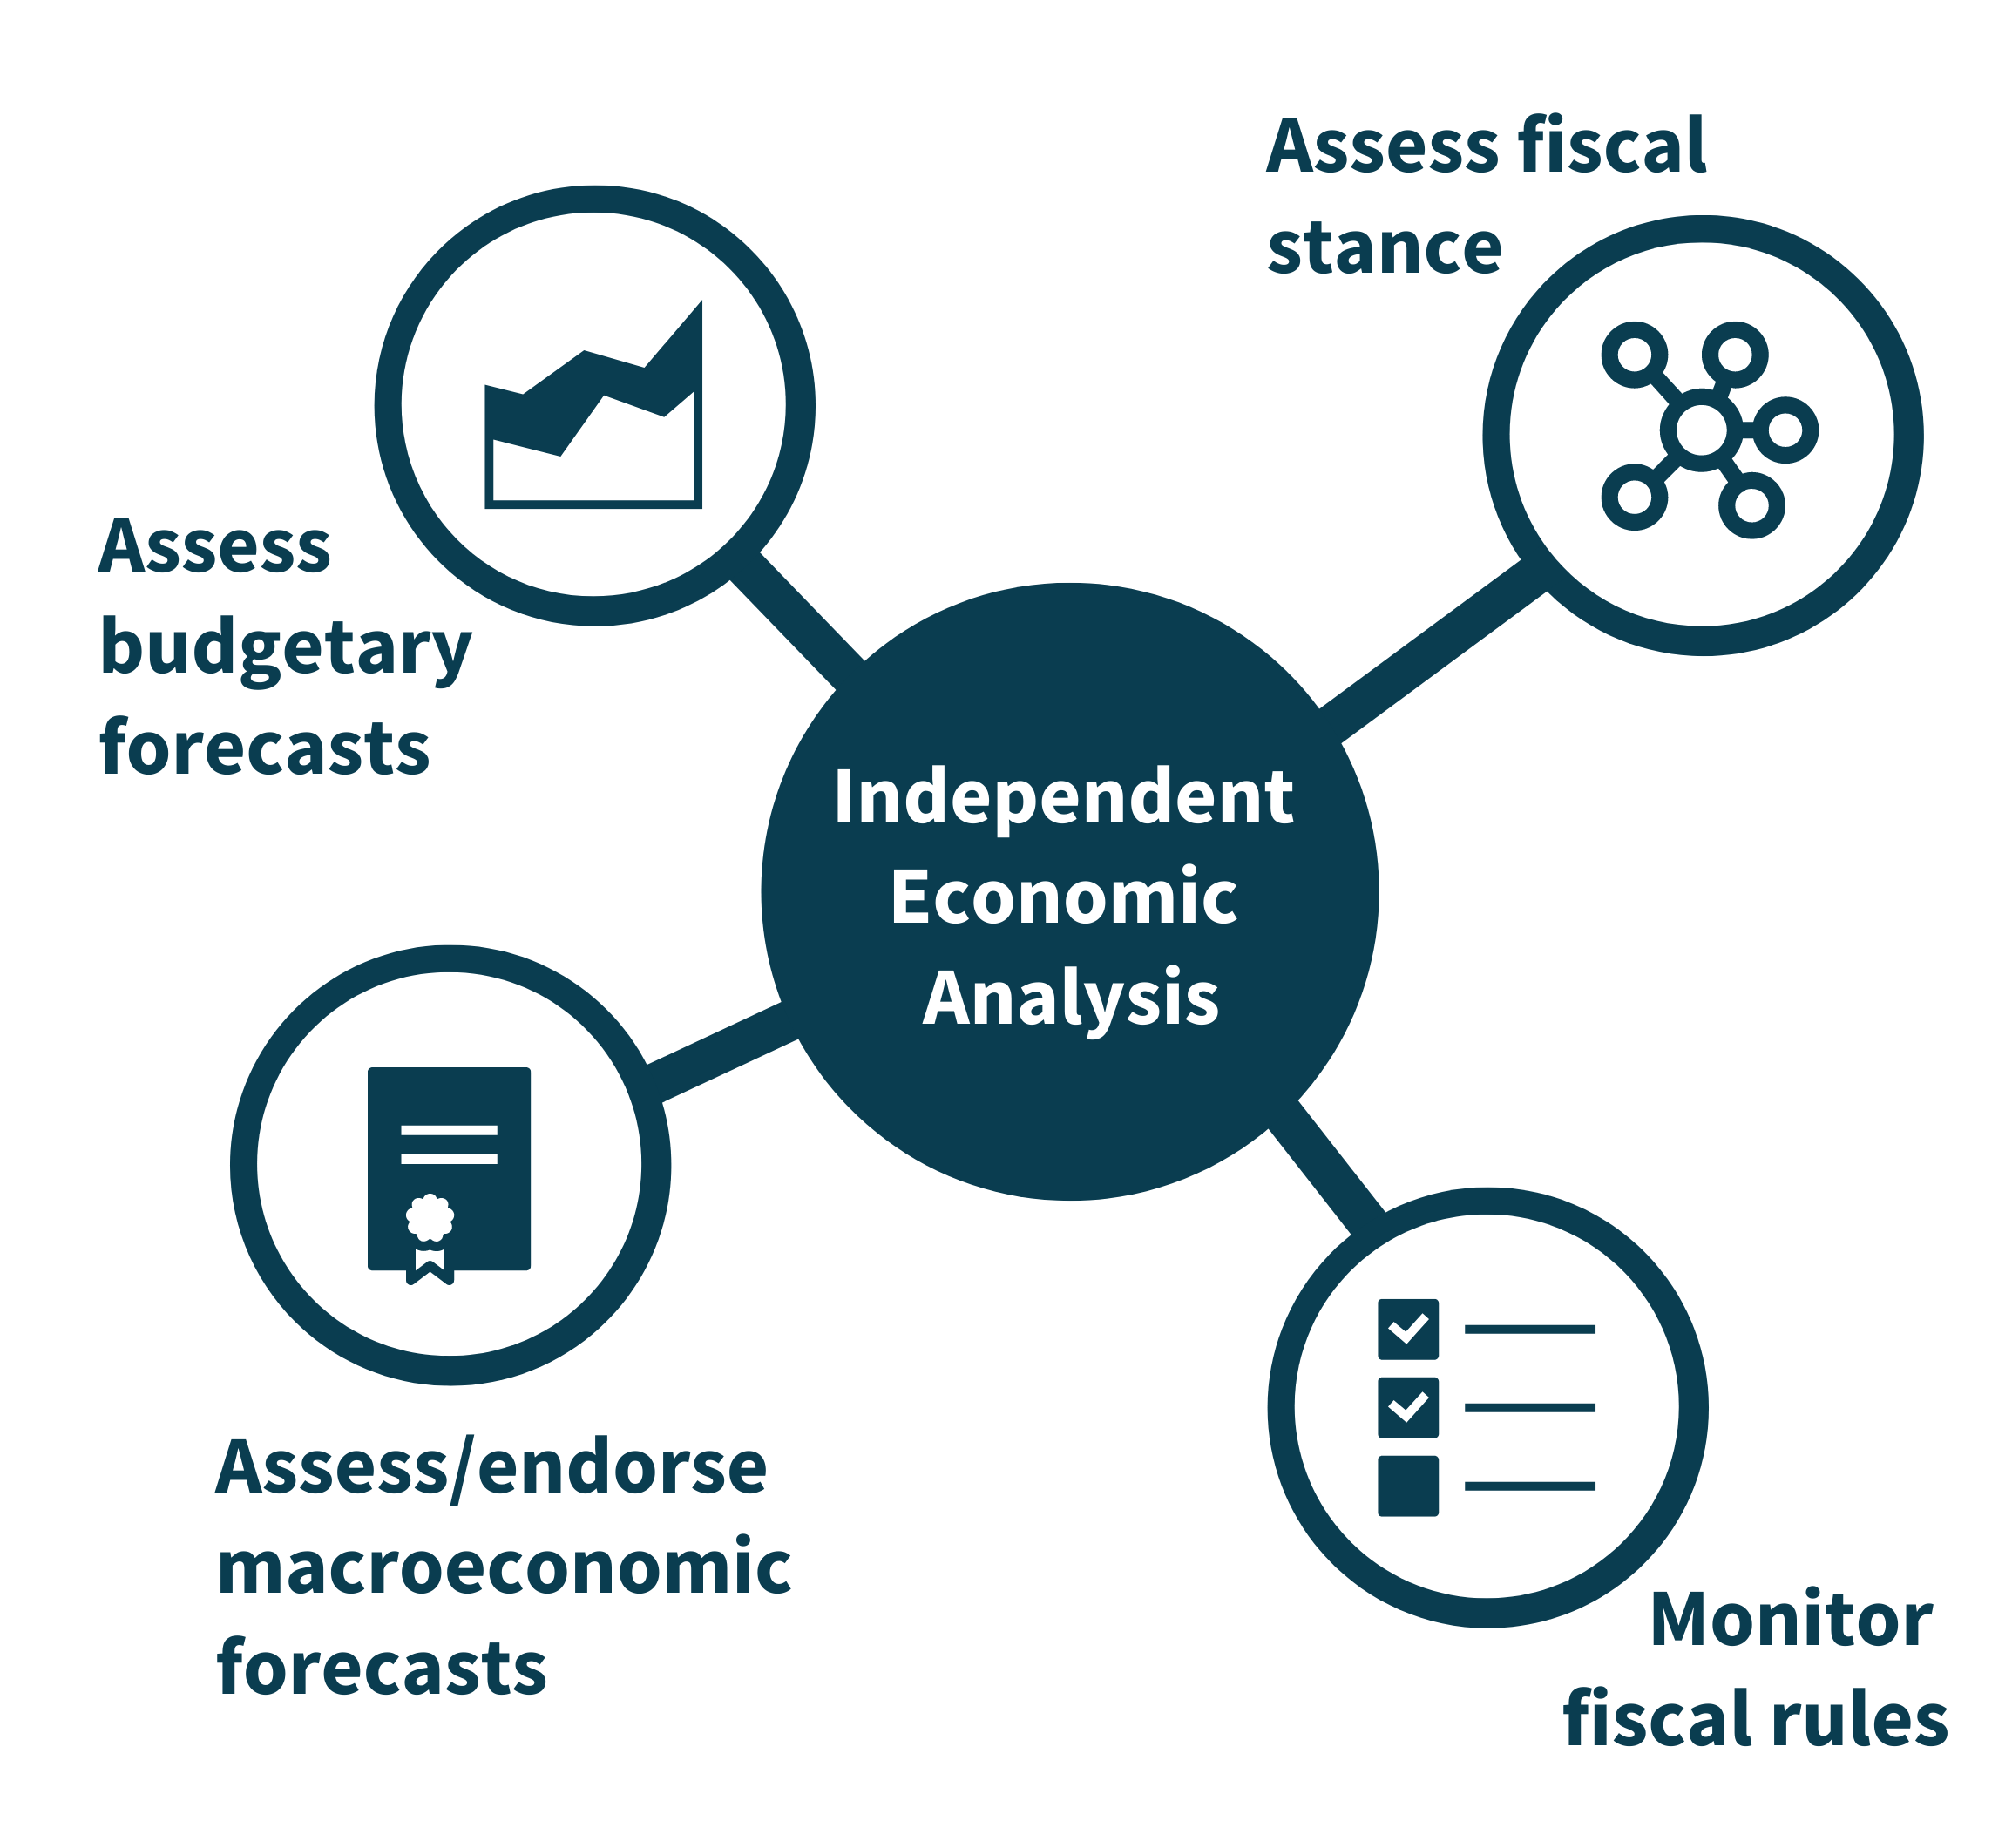 Independent Economic Analysis: Assess official budgetary forecasts; Assess/endorse official macroeconomic forecasts; Monitor compliance with fiscal rules; Assess fiscal stance